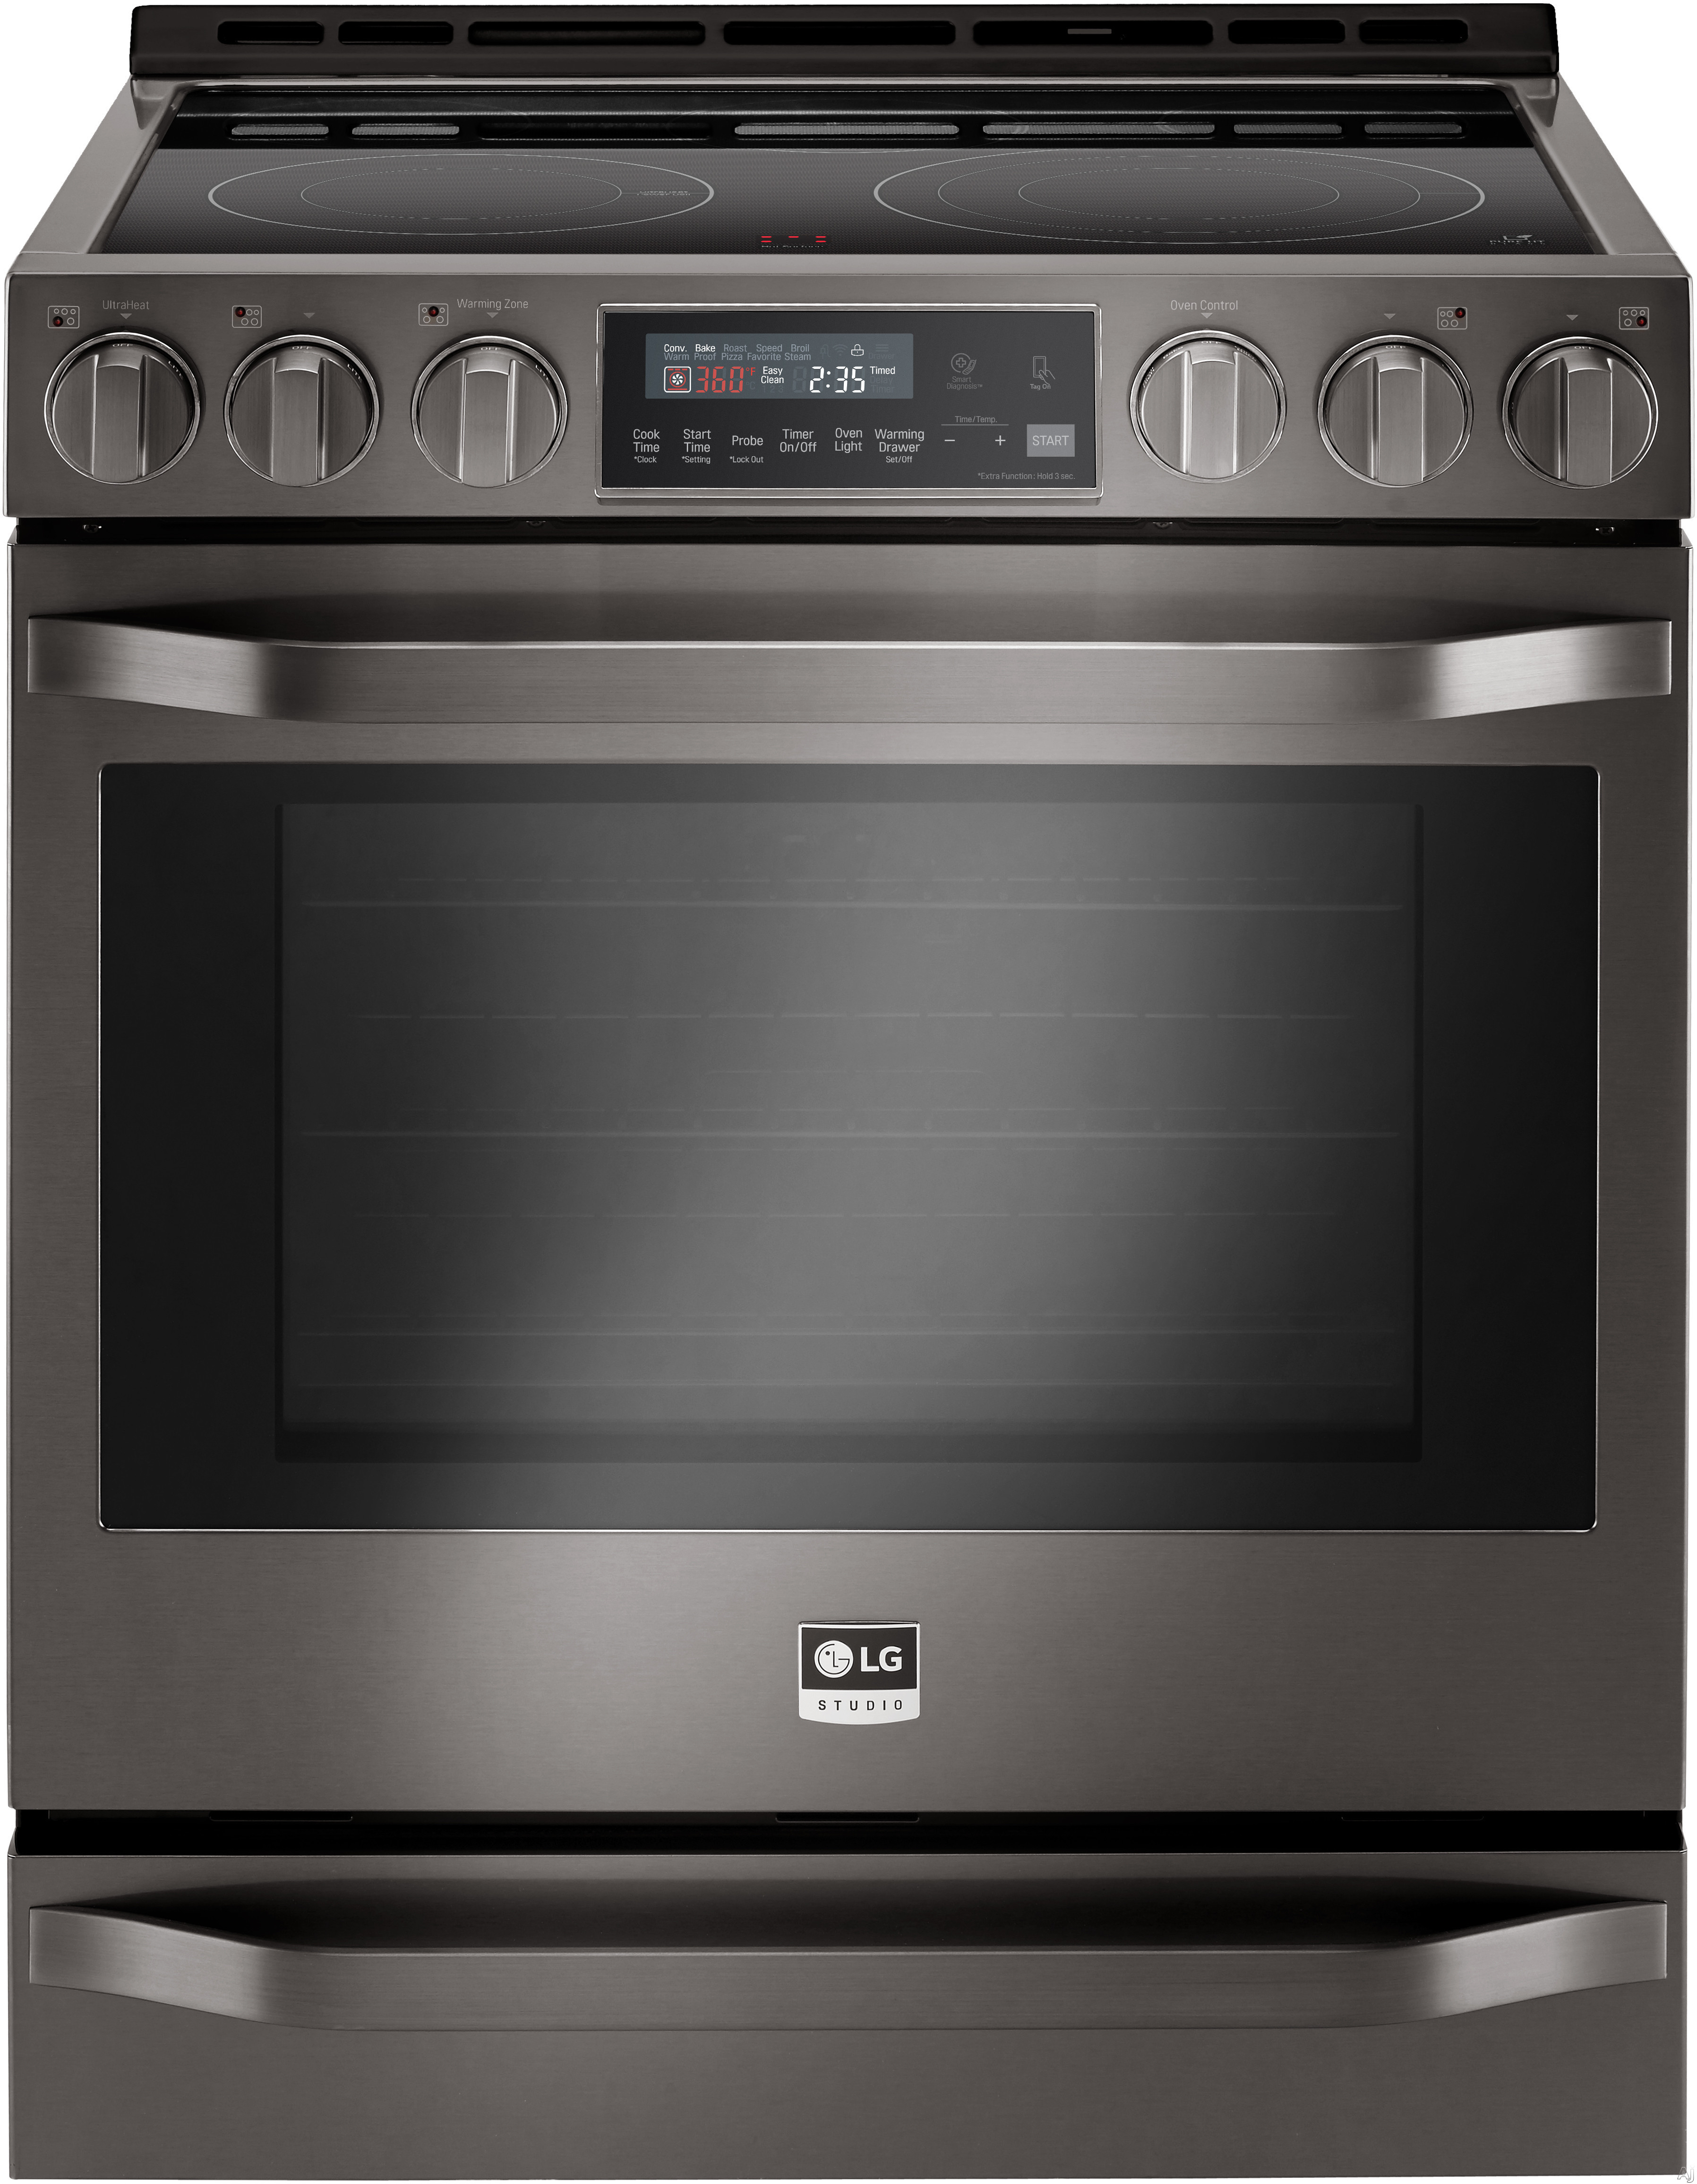 LG Studio LSSE3029BD 30 Inch Slide-In Electric Range with Convection, Infrared Heating, EasyClean, Delay Start, 6.3 cu. ft. Capacity, 5 Smoothtop Elements, Hot Surface LED Indicator and Warming Drawer